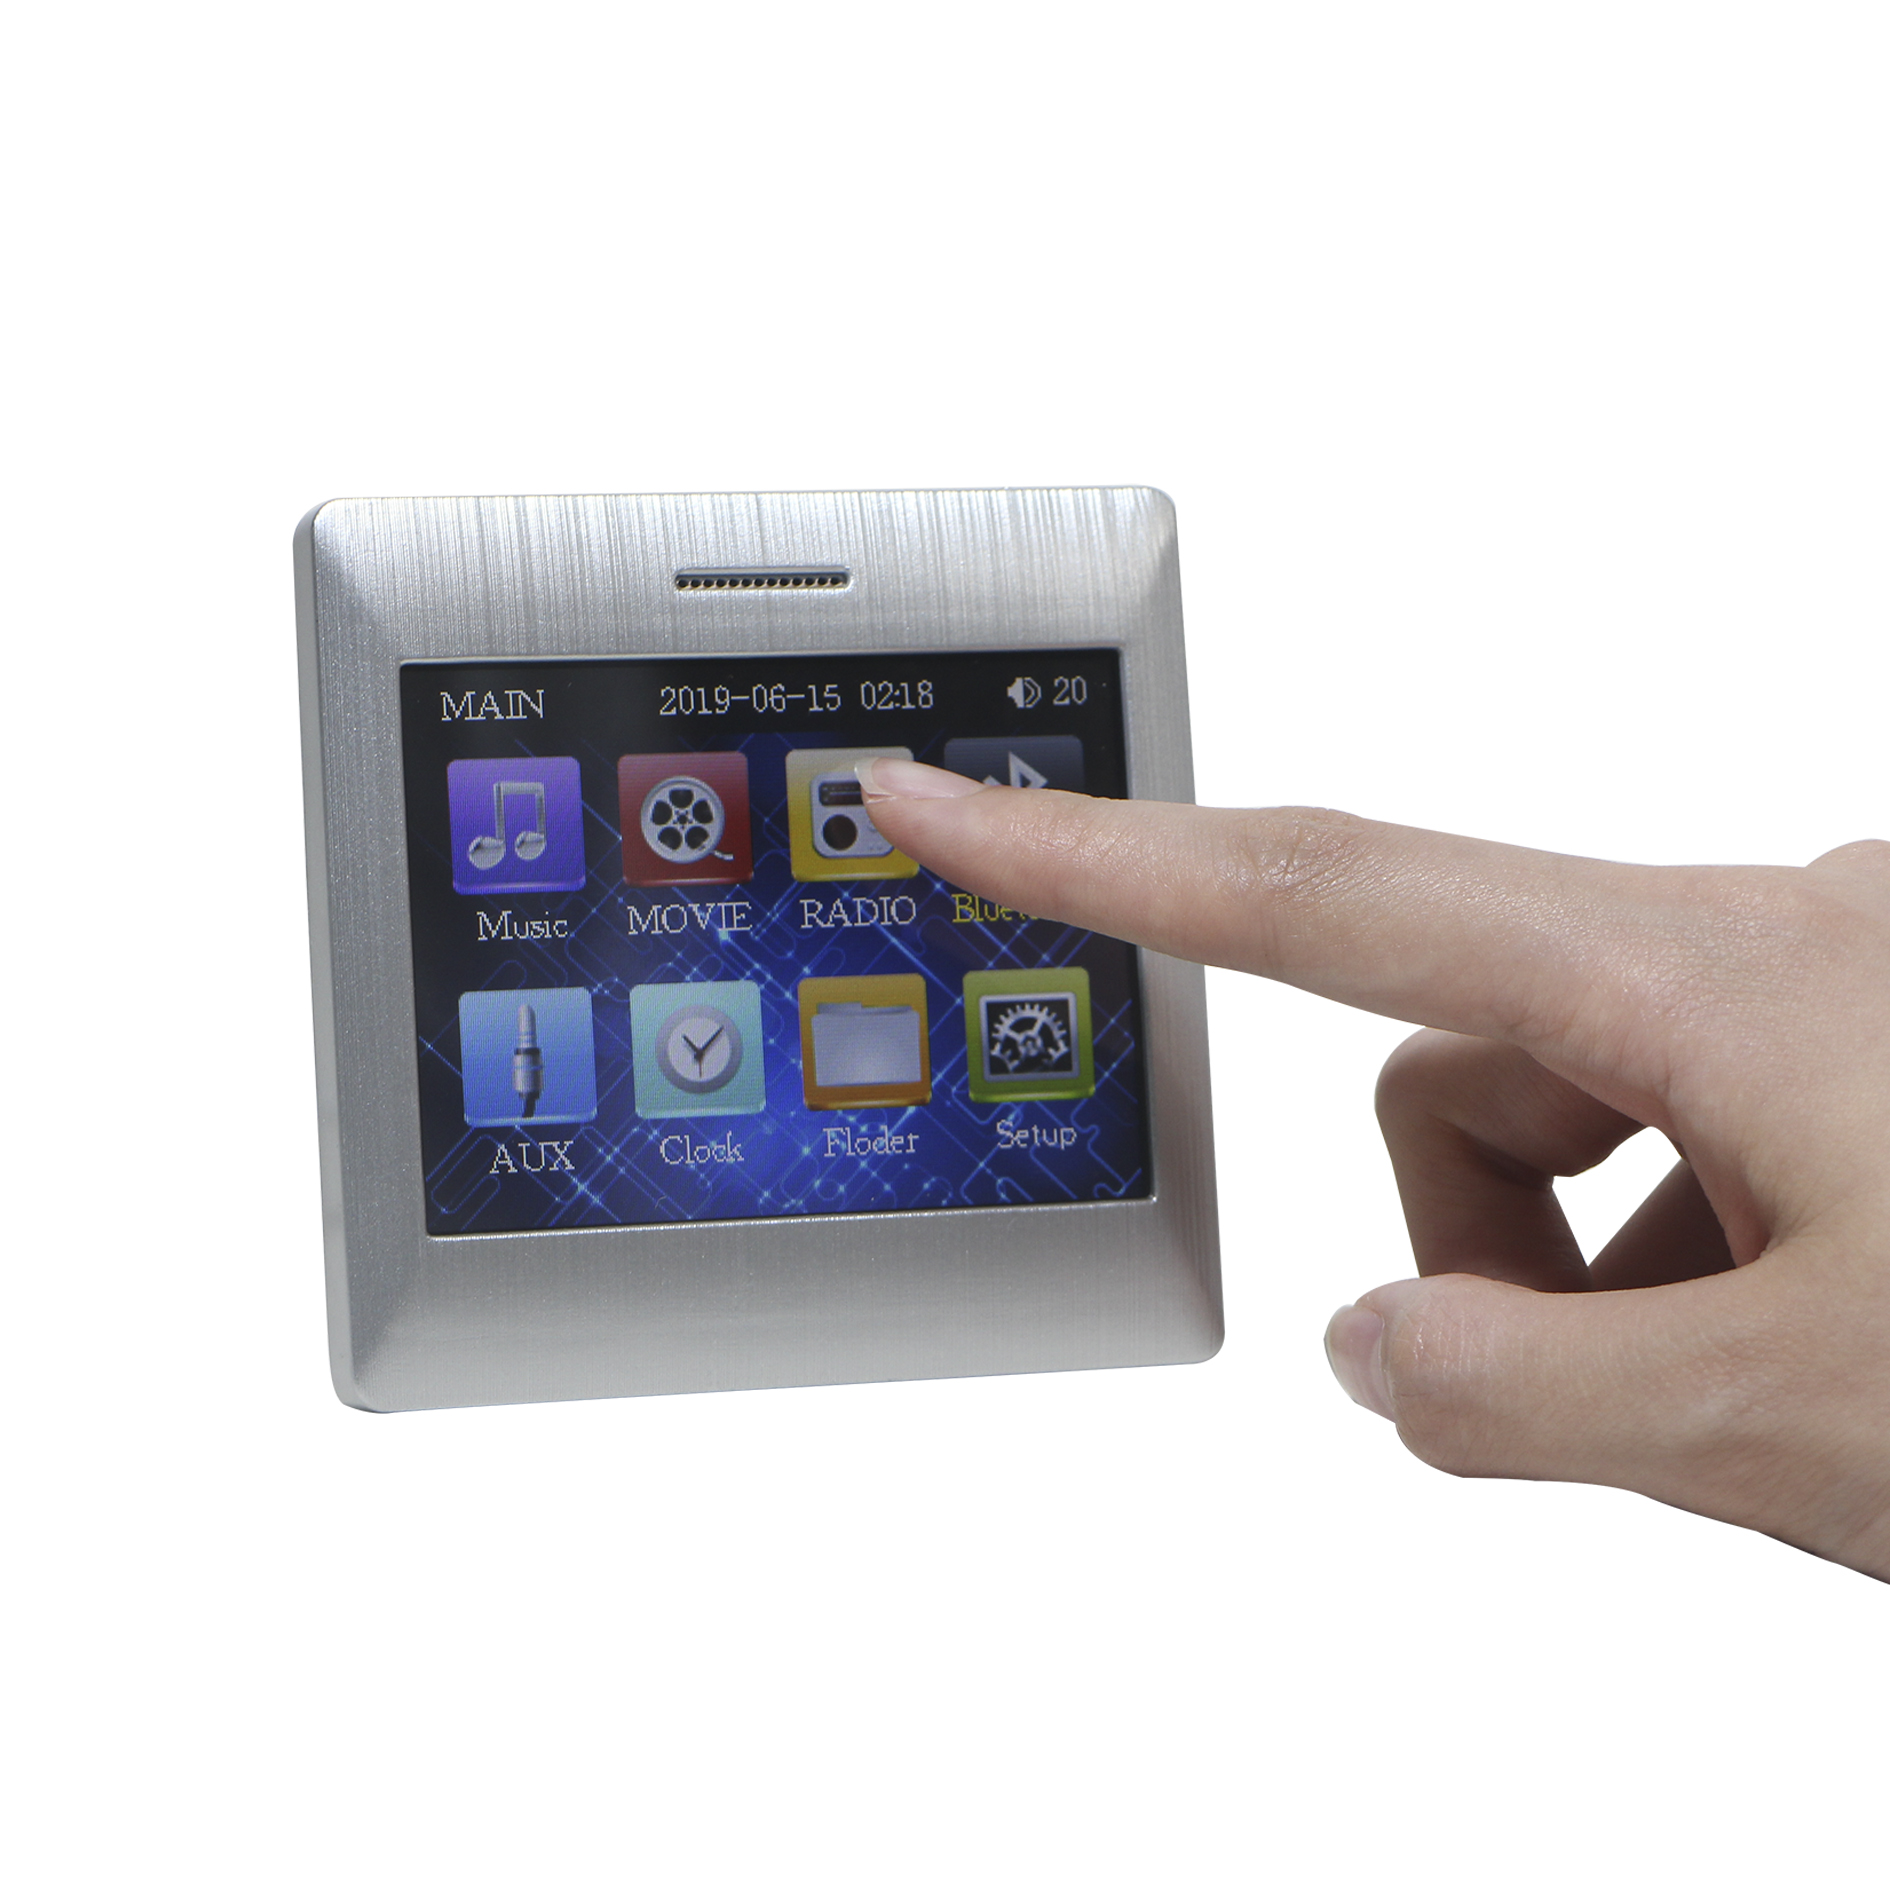 Touch Screen Bluetooth In Wall Audio Amplifier With Wireless Remote Control, Supports USB,SD,AUX,FM Radio,can Power 8 Speakers